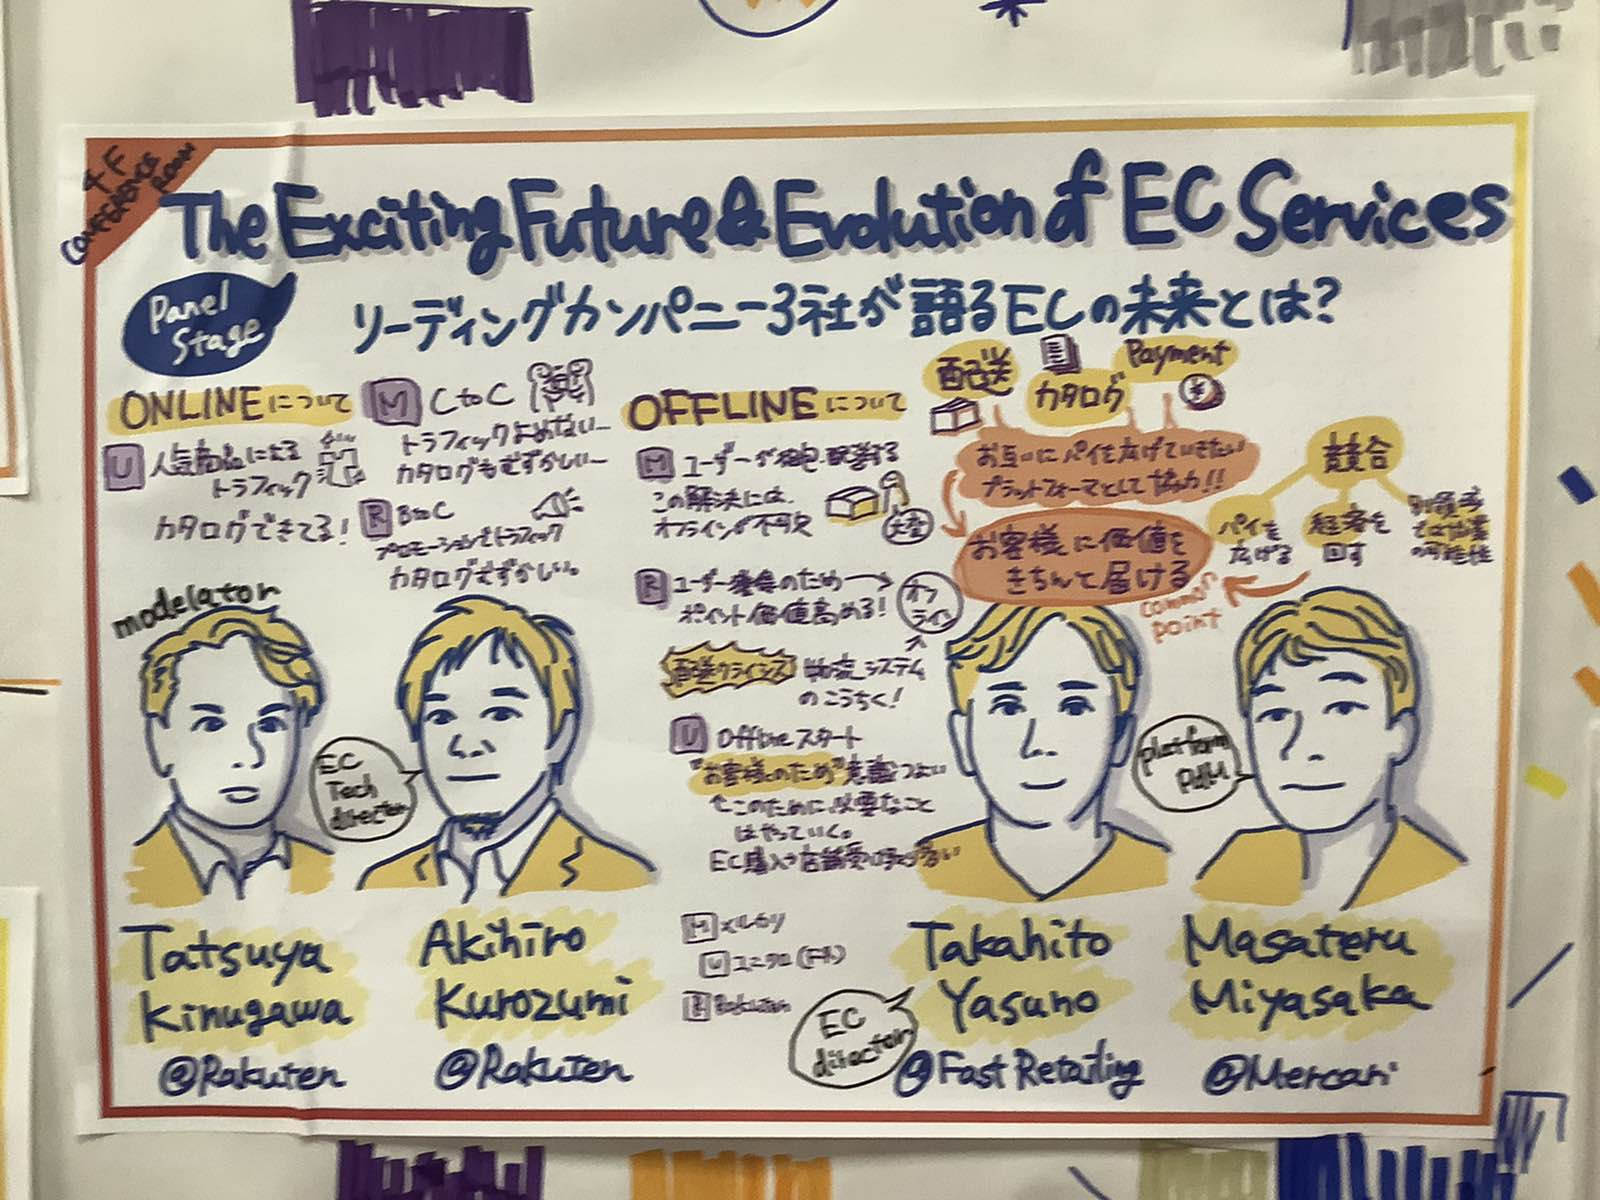 The Exciting Future & Evolution of EC Services